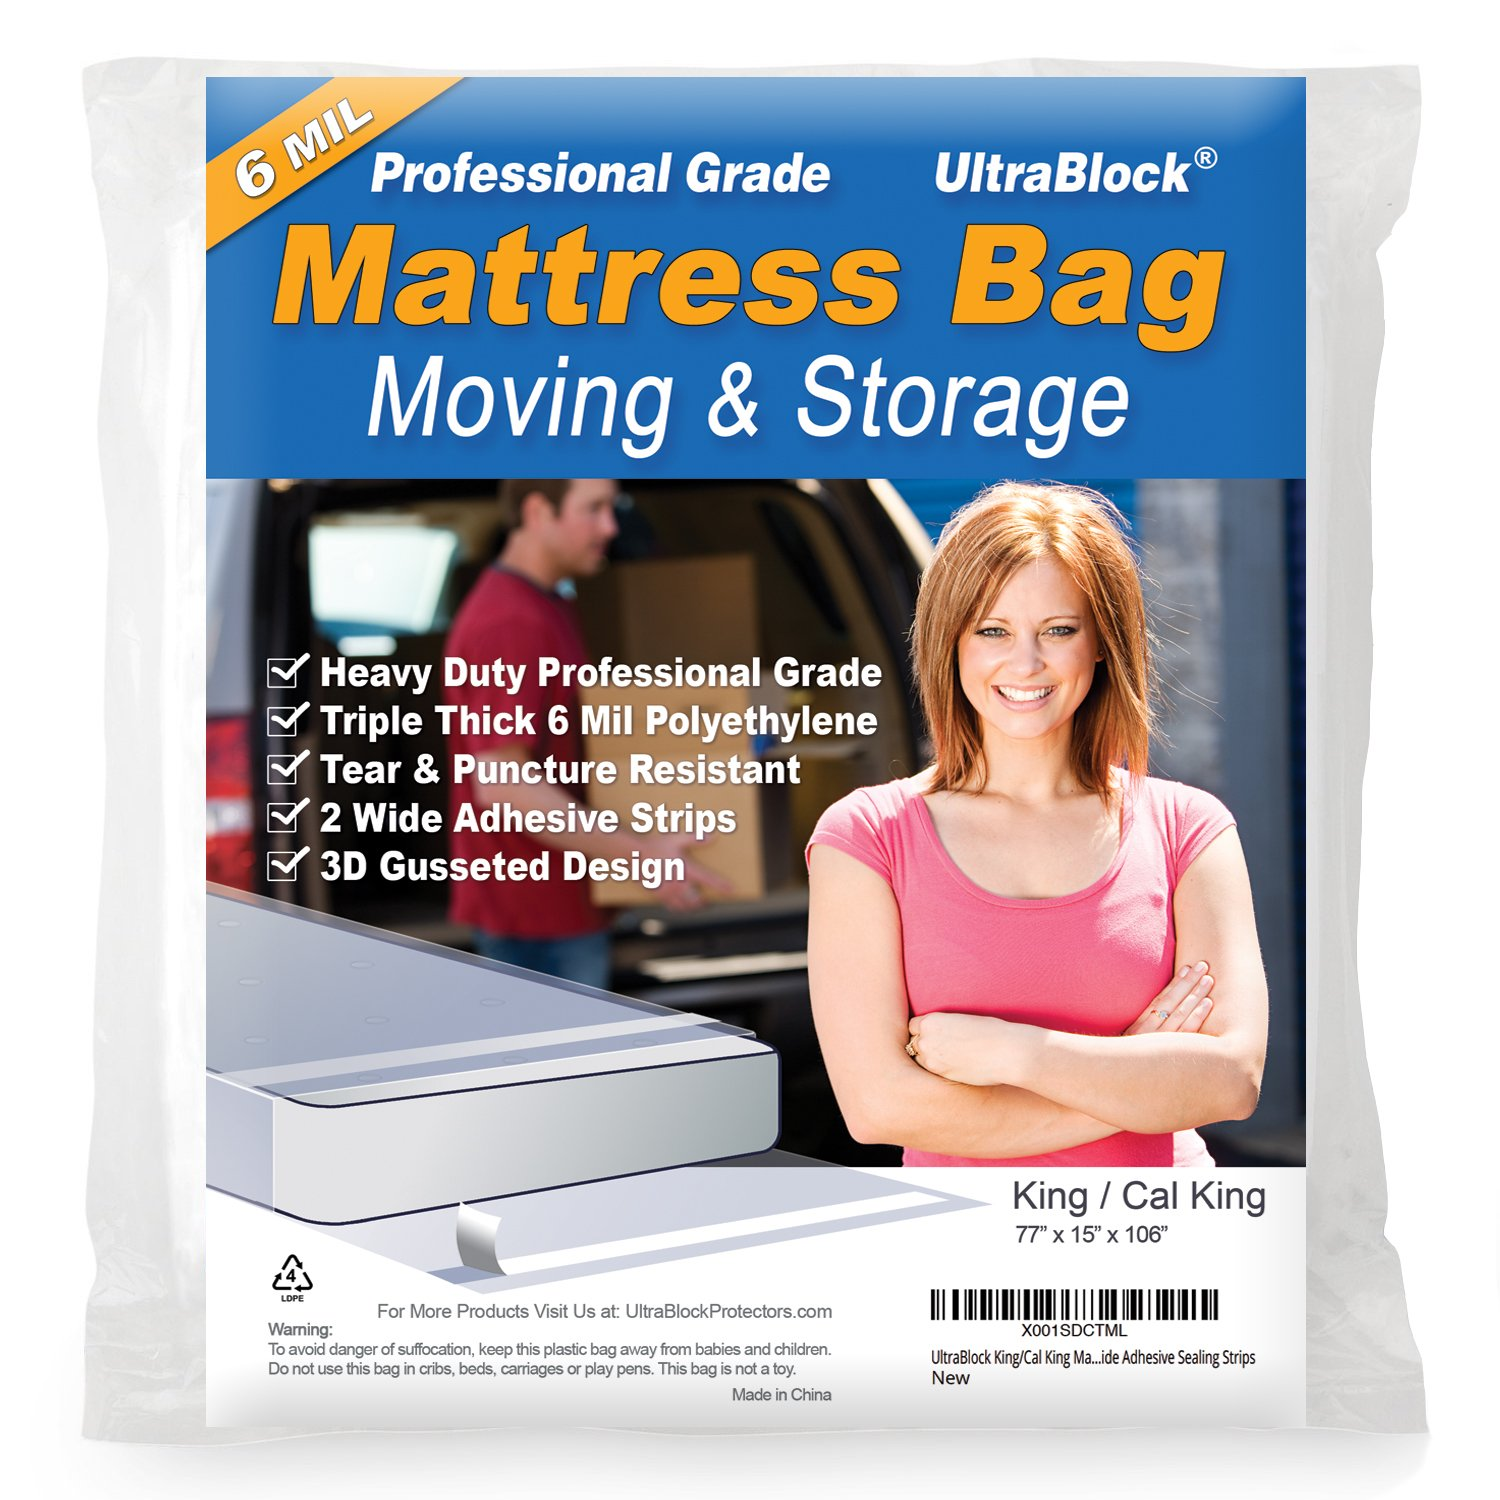 UltraBlock Mattress Bag for Moving & Storage - King/Cal King Size Heavy Duty Triple Thick 6 mil Tear & Puncture Resistant Bag with Two Extra Wide Adhesive Strips